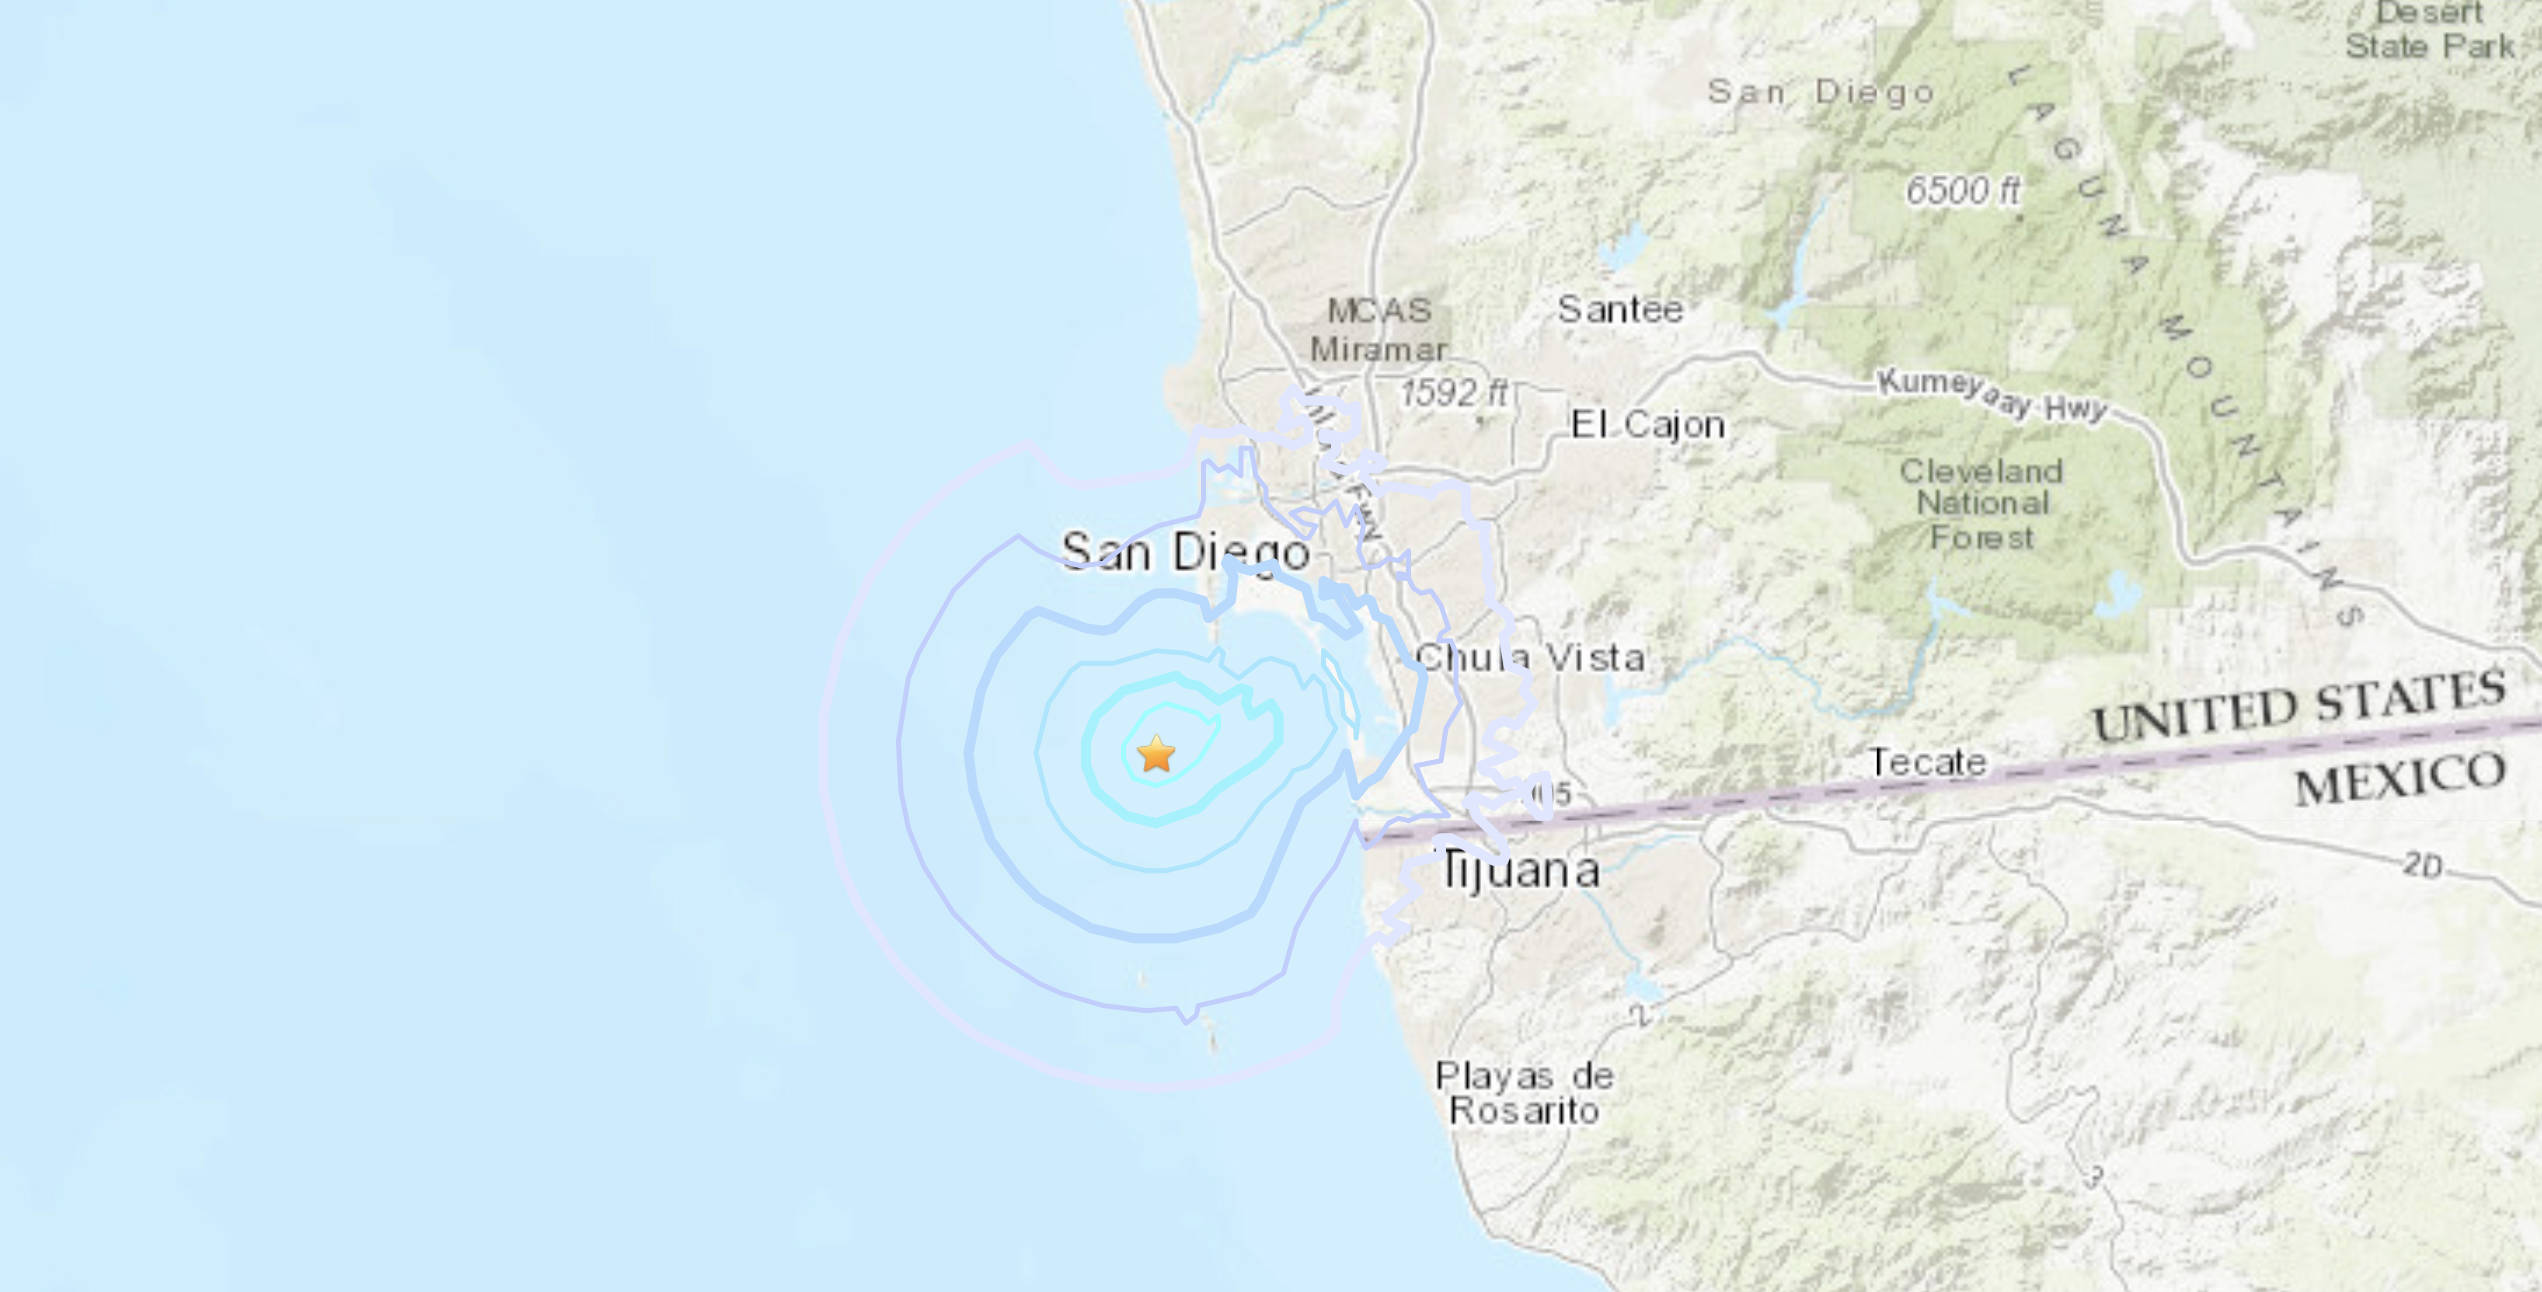 A magnitude 3.2 earthquake reported two miles from San Diego on Dec. 5, 2020. (USGS)